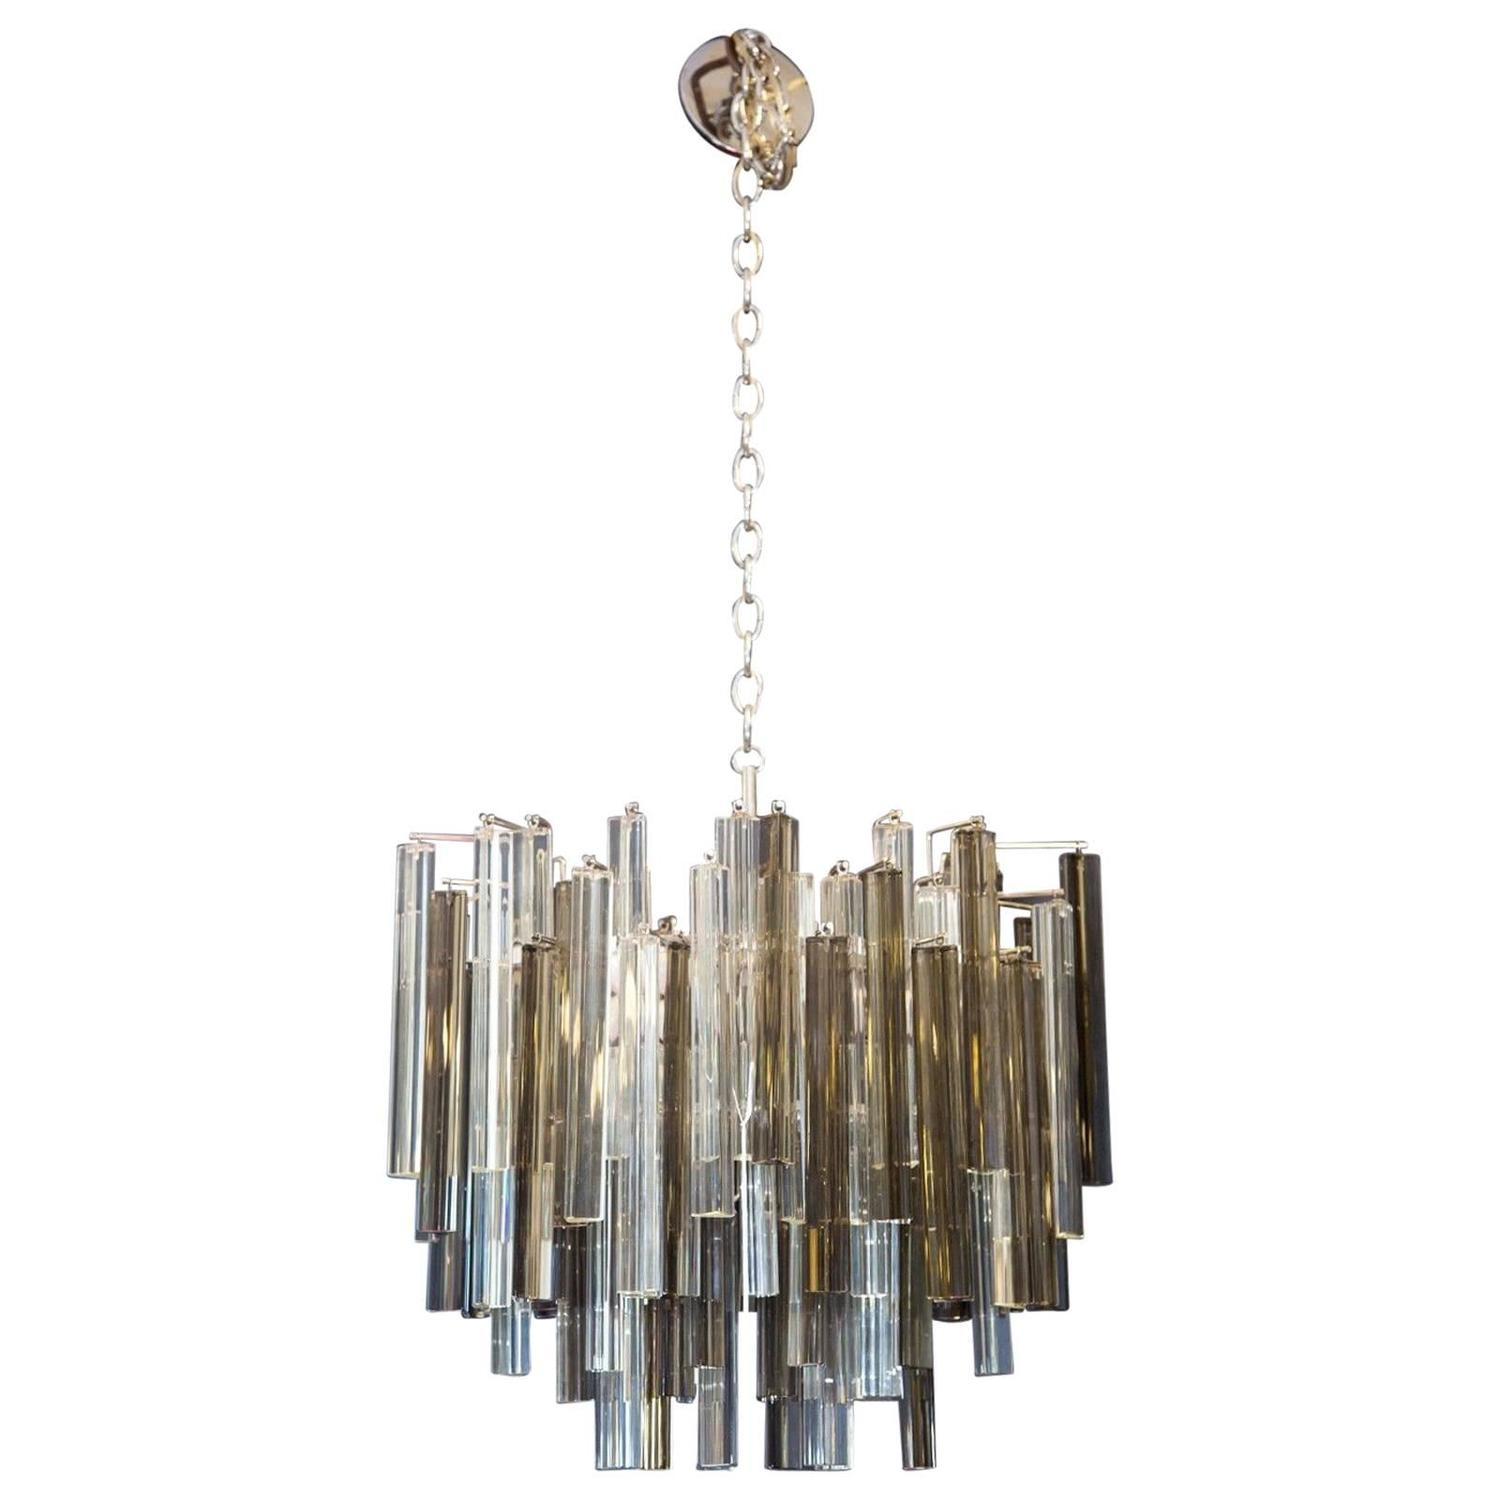 Two Color Smoke And Clear Murano Chandelier By Camer For Sale At